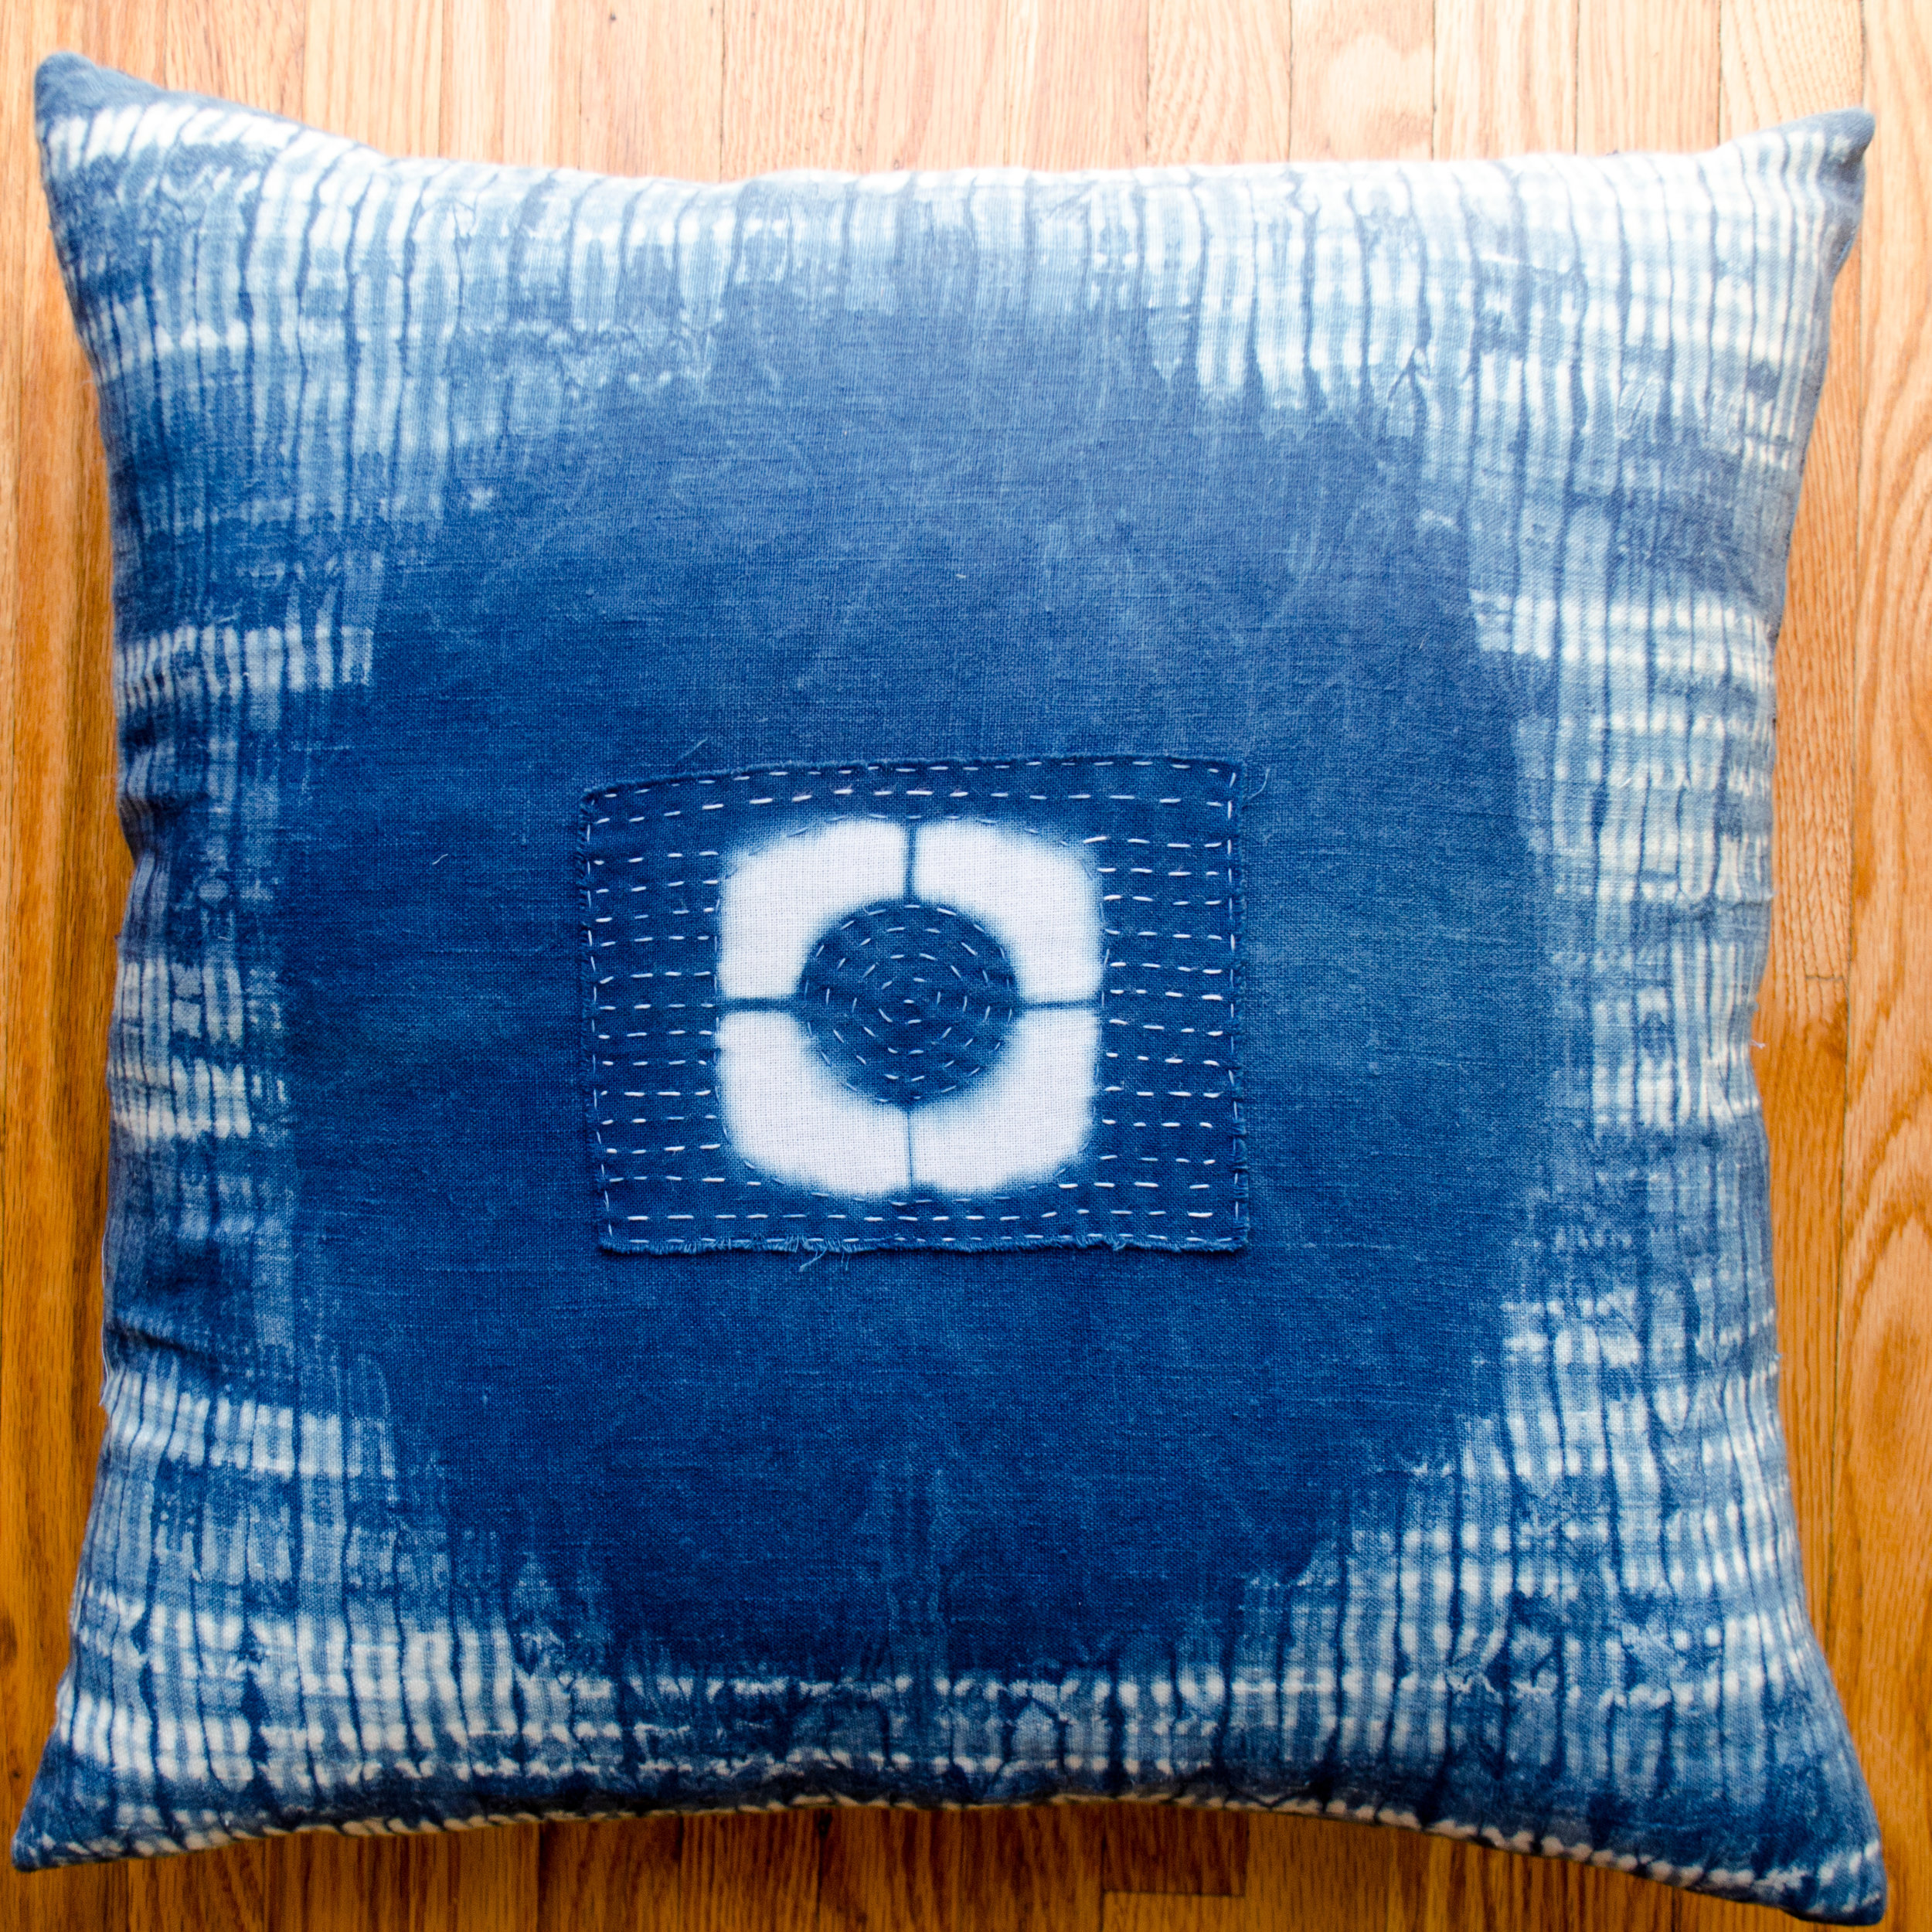 Linen pillow dyed in indigo with a cotton boro patch